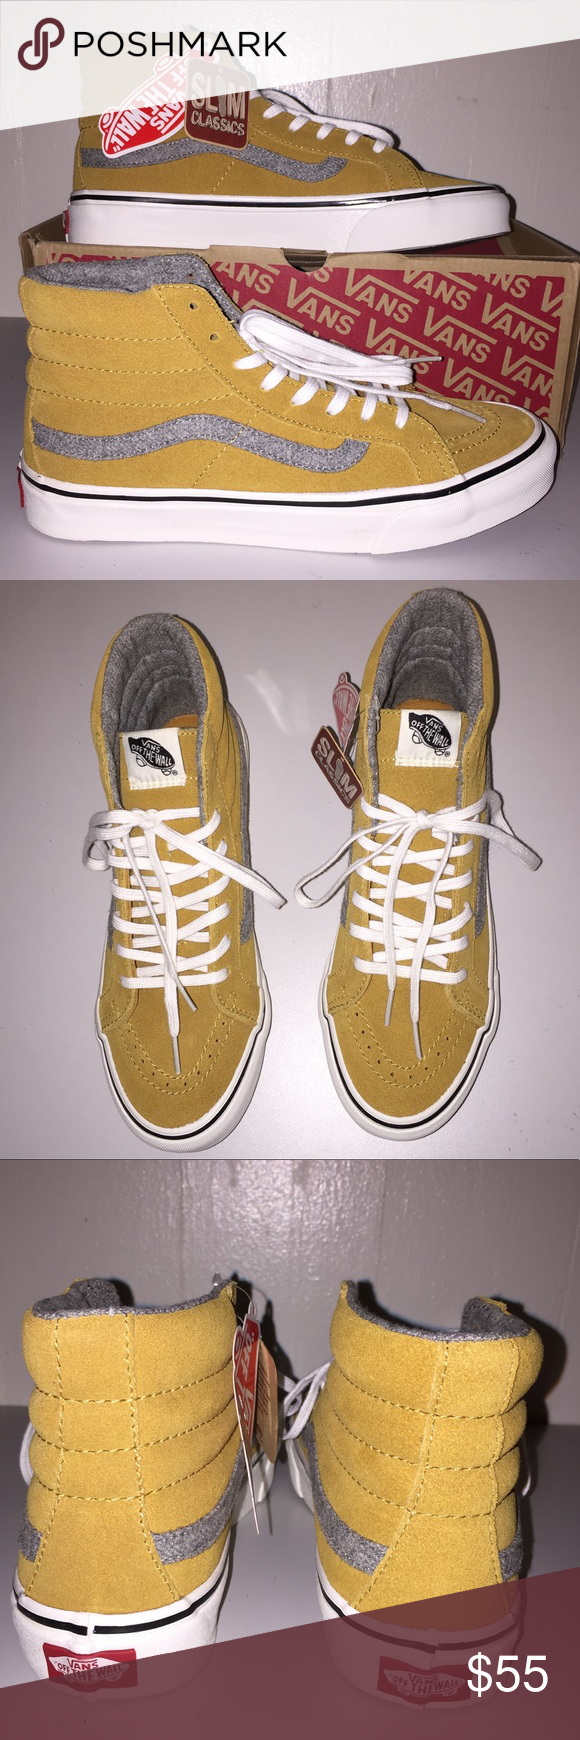 310a09ce64 NWT Vans Vintage Suede SK8-Hi Slim Amber Gold Beautiful amber gold color.  Very cute and comfy shoes. Suede leather upper. Unisex M 6.5 W8.0 Vans Shoes  ...